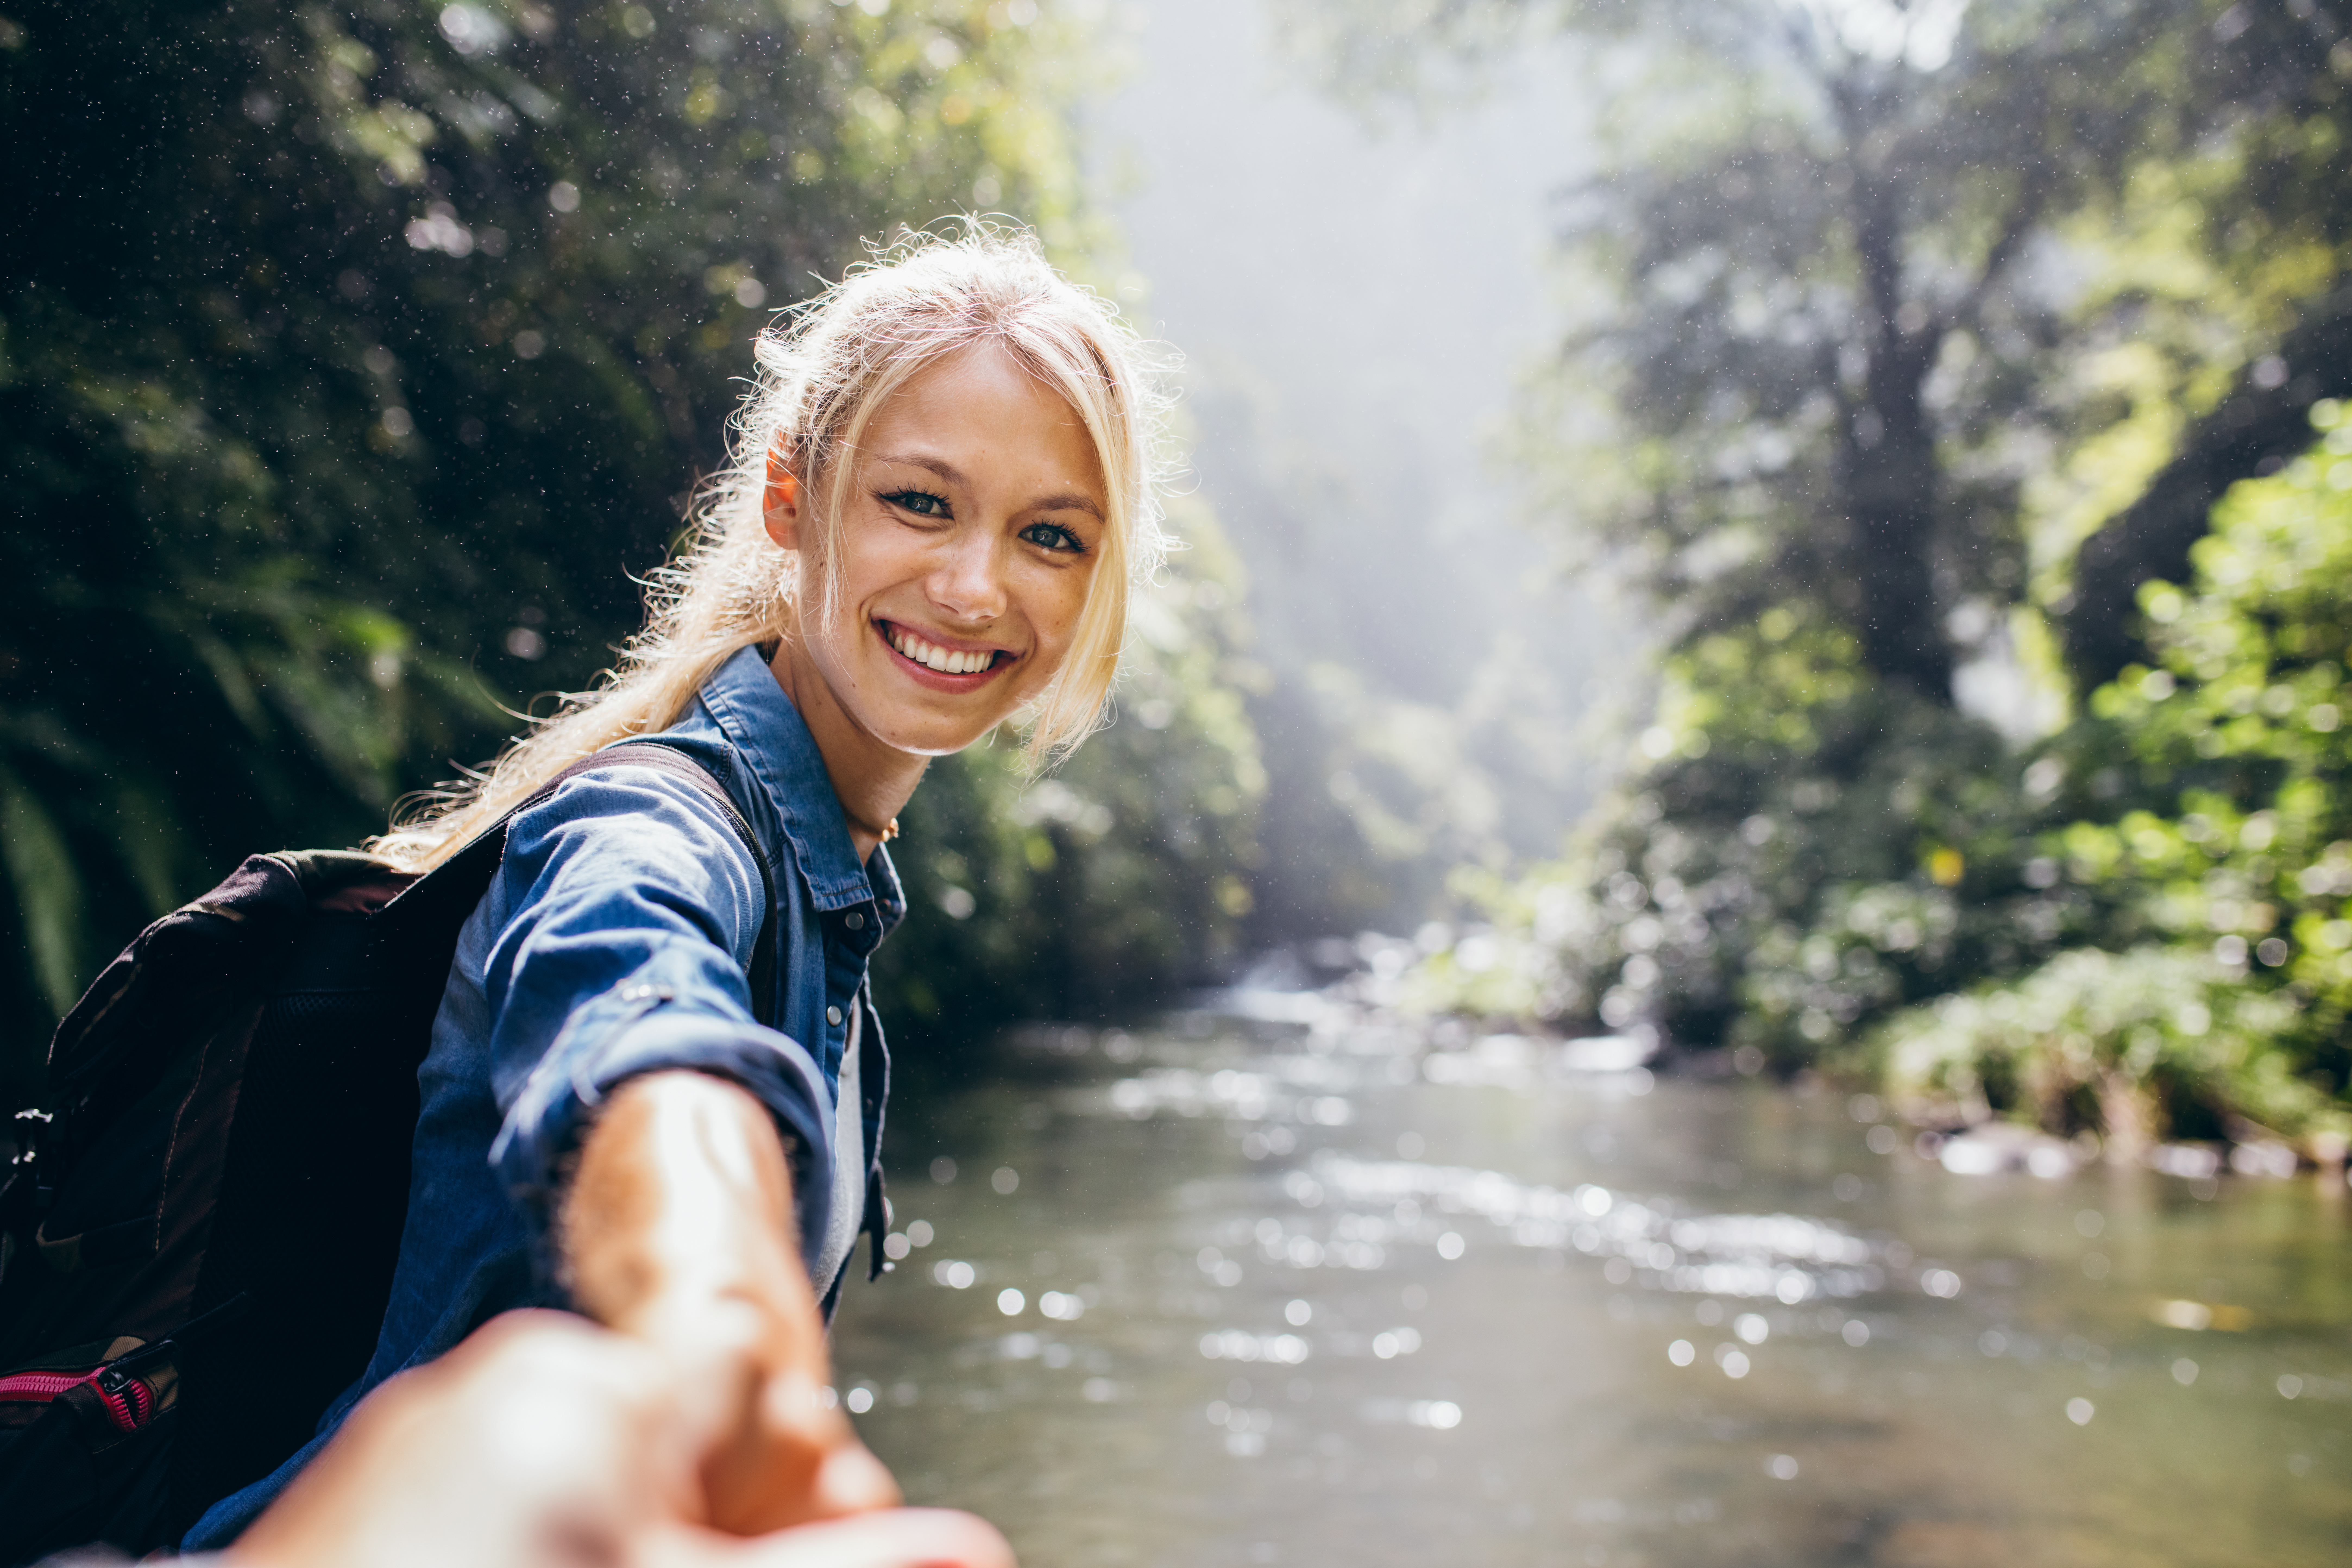 Getting outside has great mental health benefits